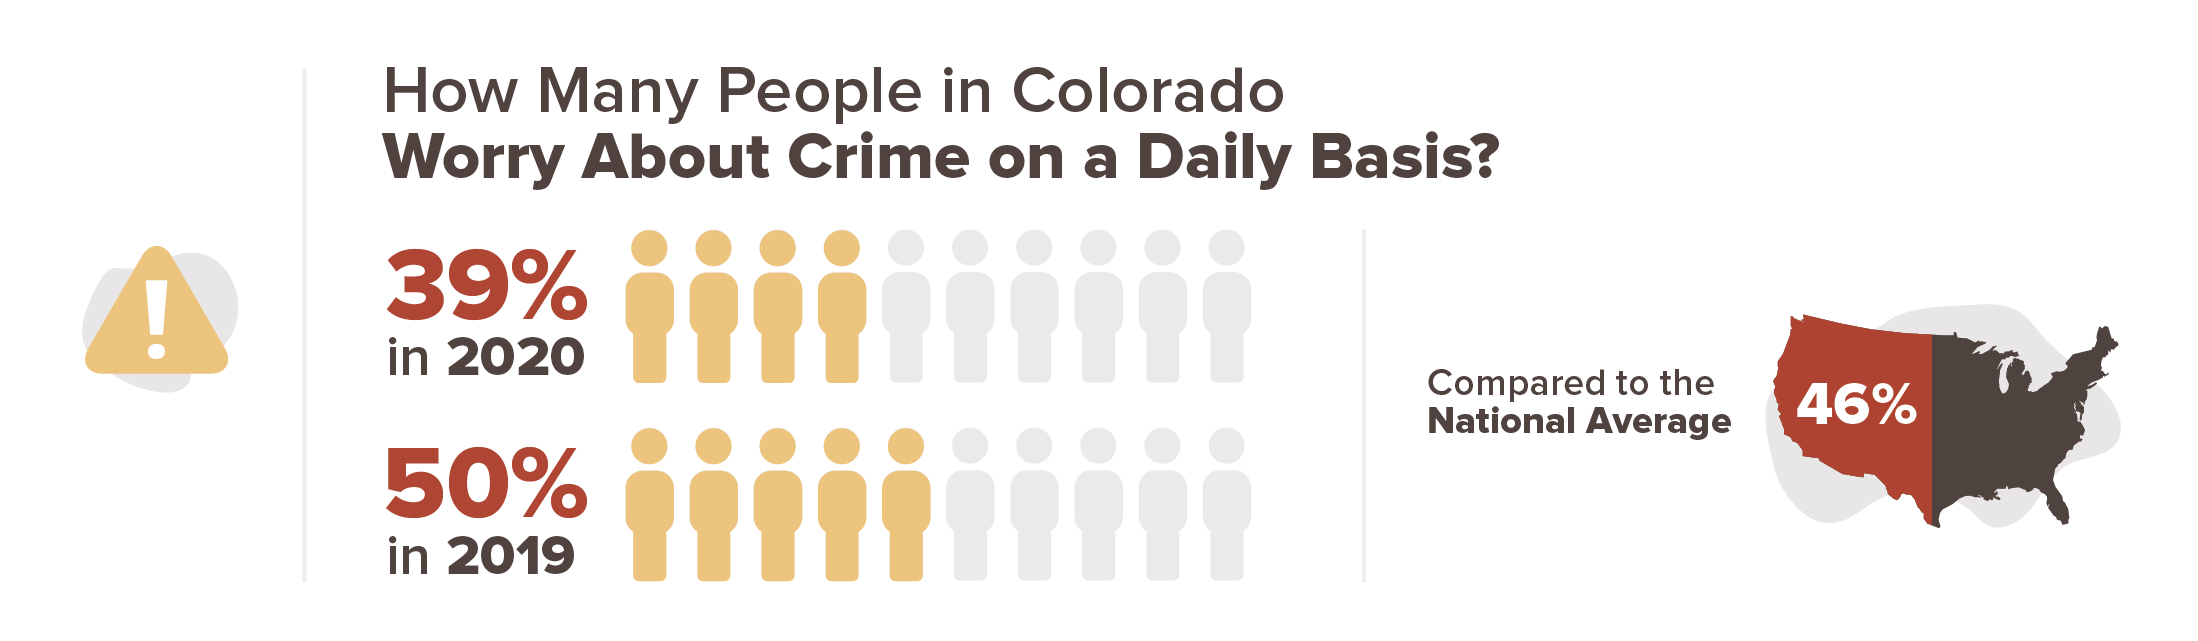 Colorado crime stats infographic